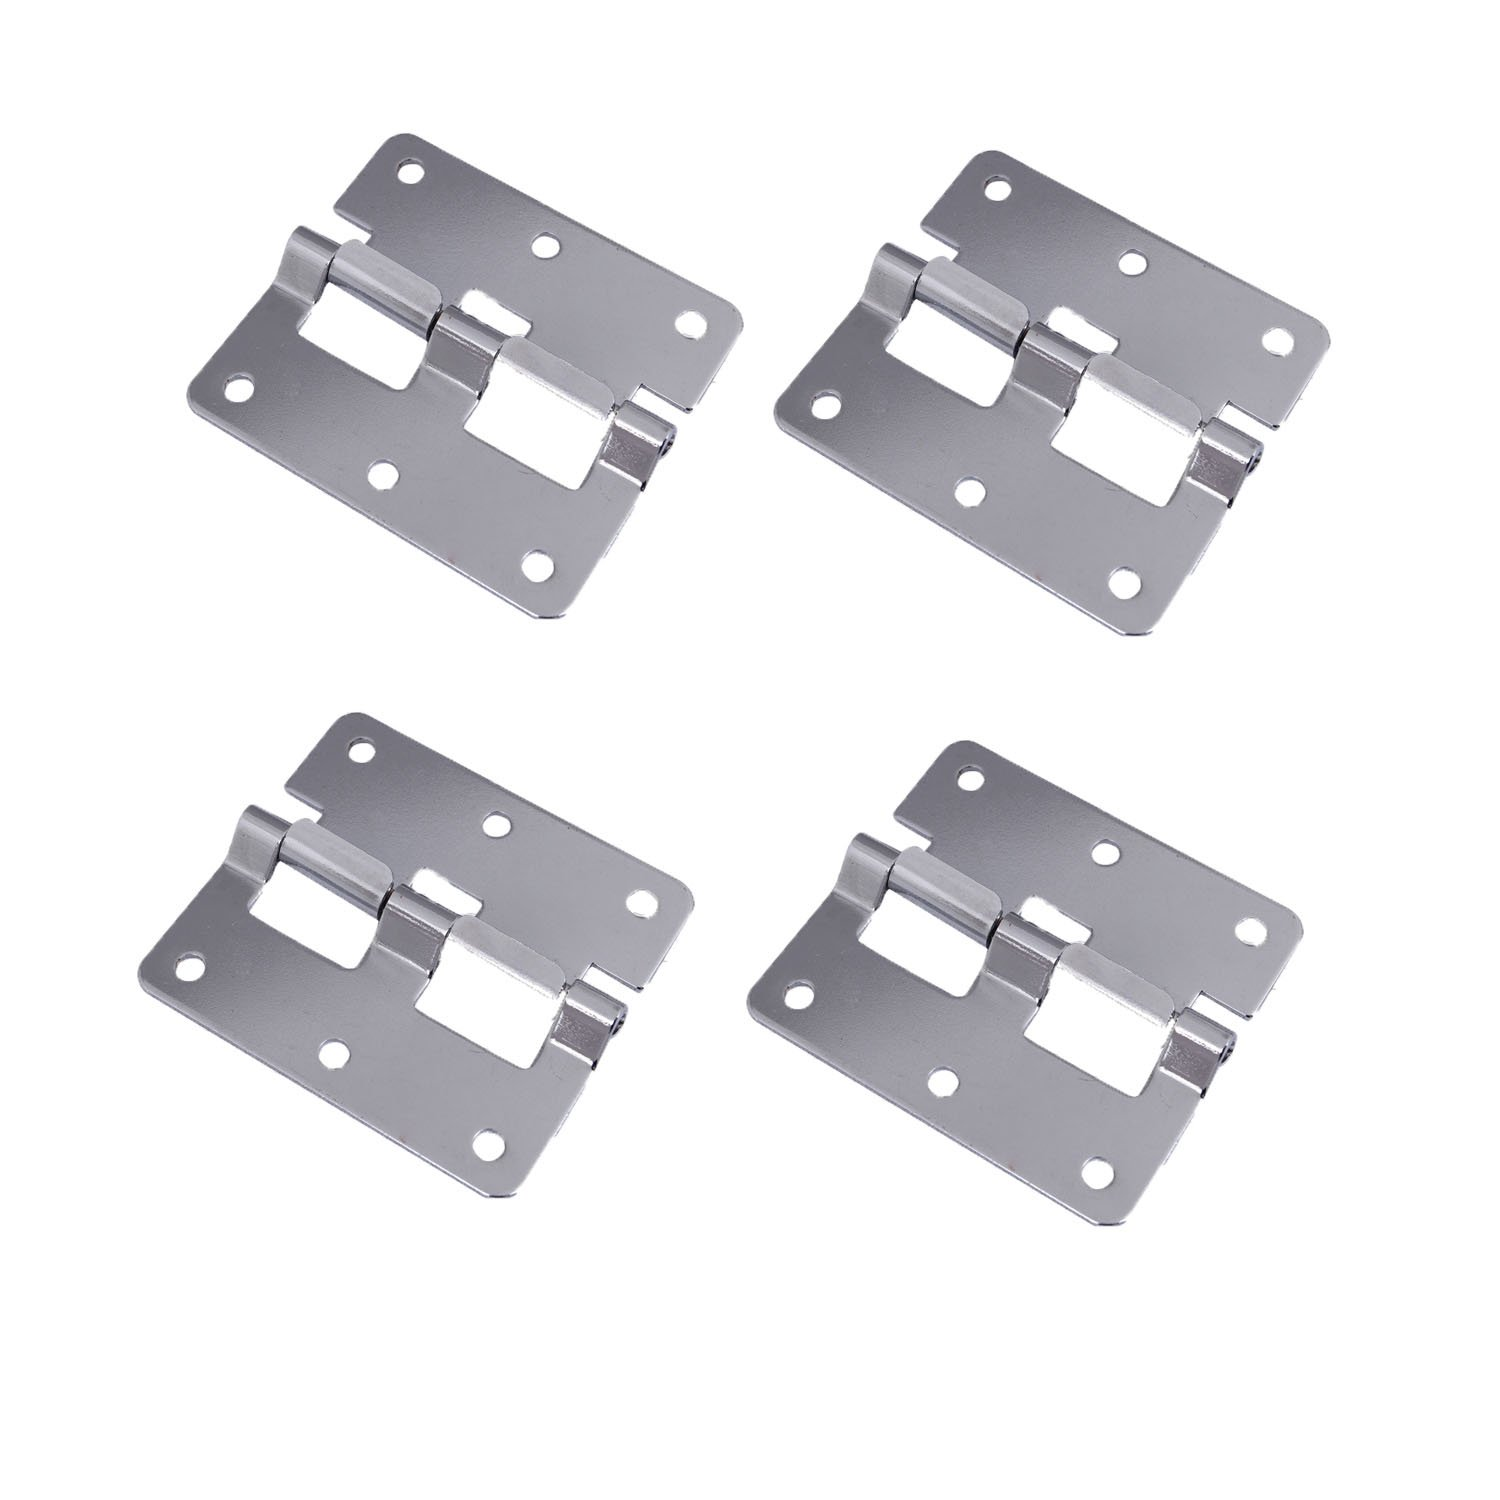 Antrader Take-Apart/Lift Off Hinge Door Hinges Chrome Flight Case Detachable Hinge Link 3'' x 2.68'' Pack of 4